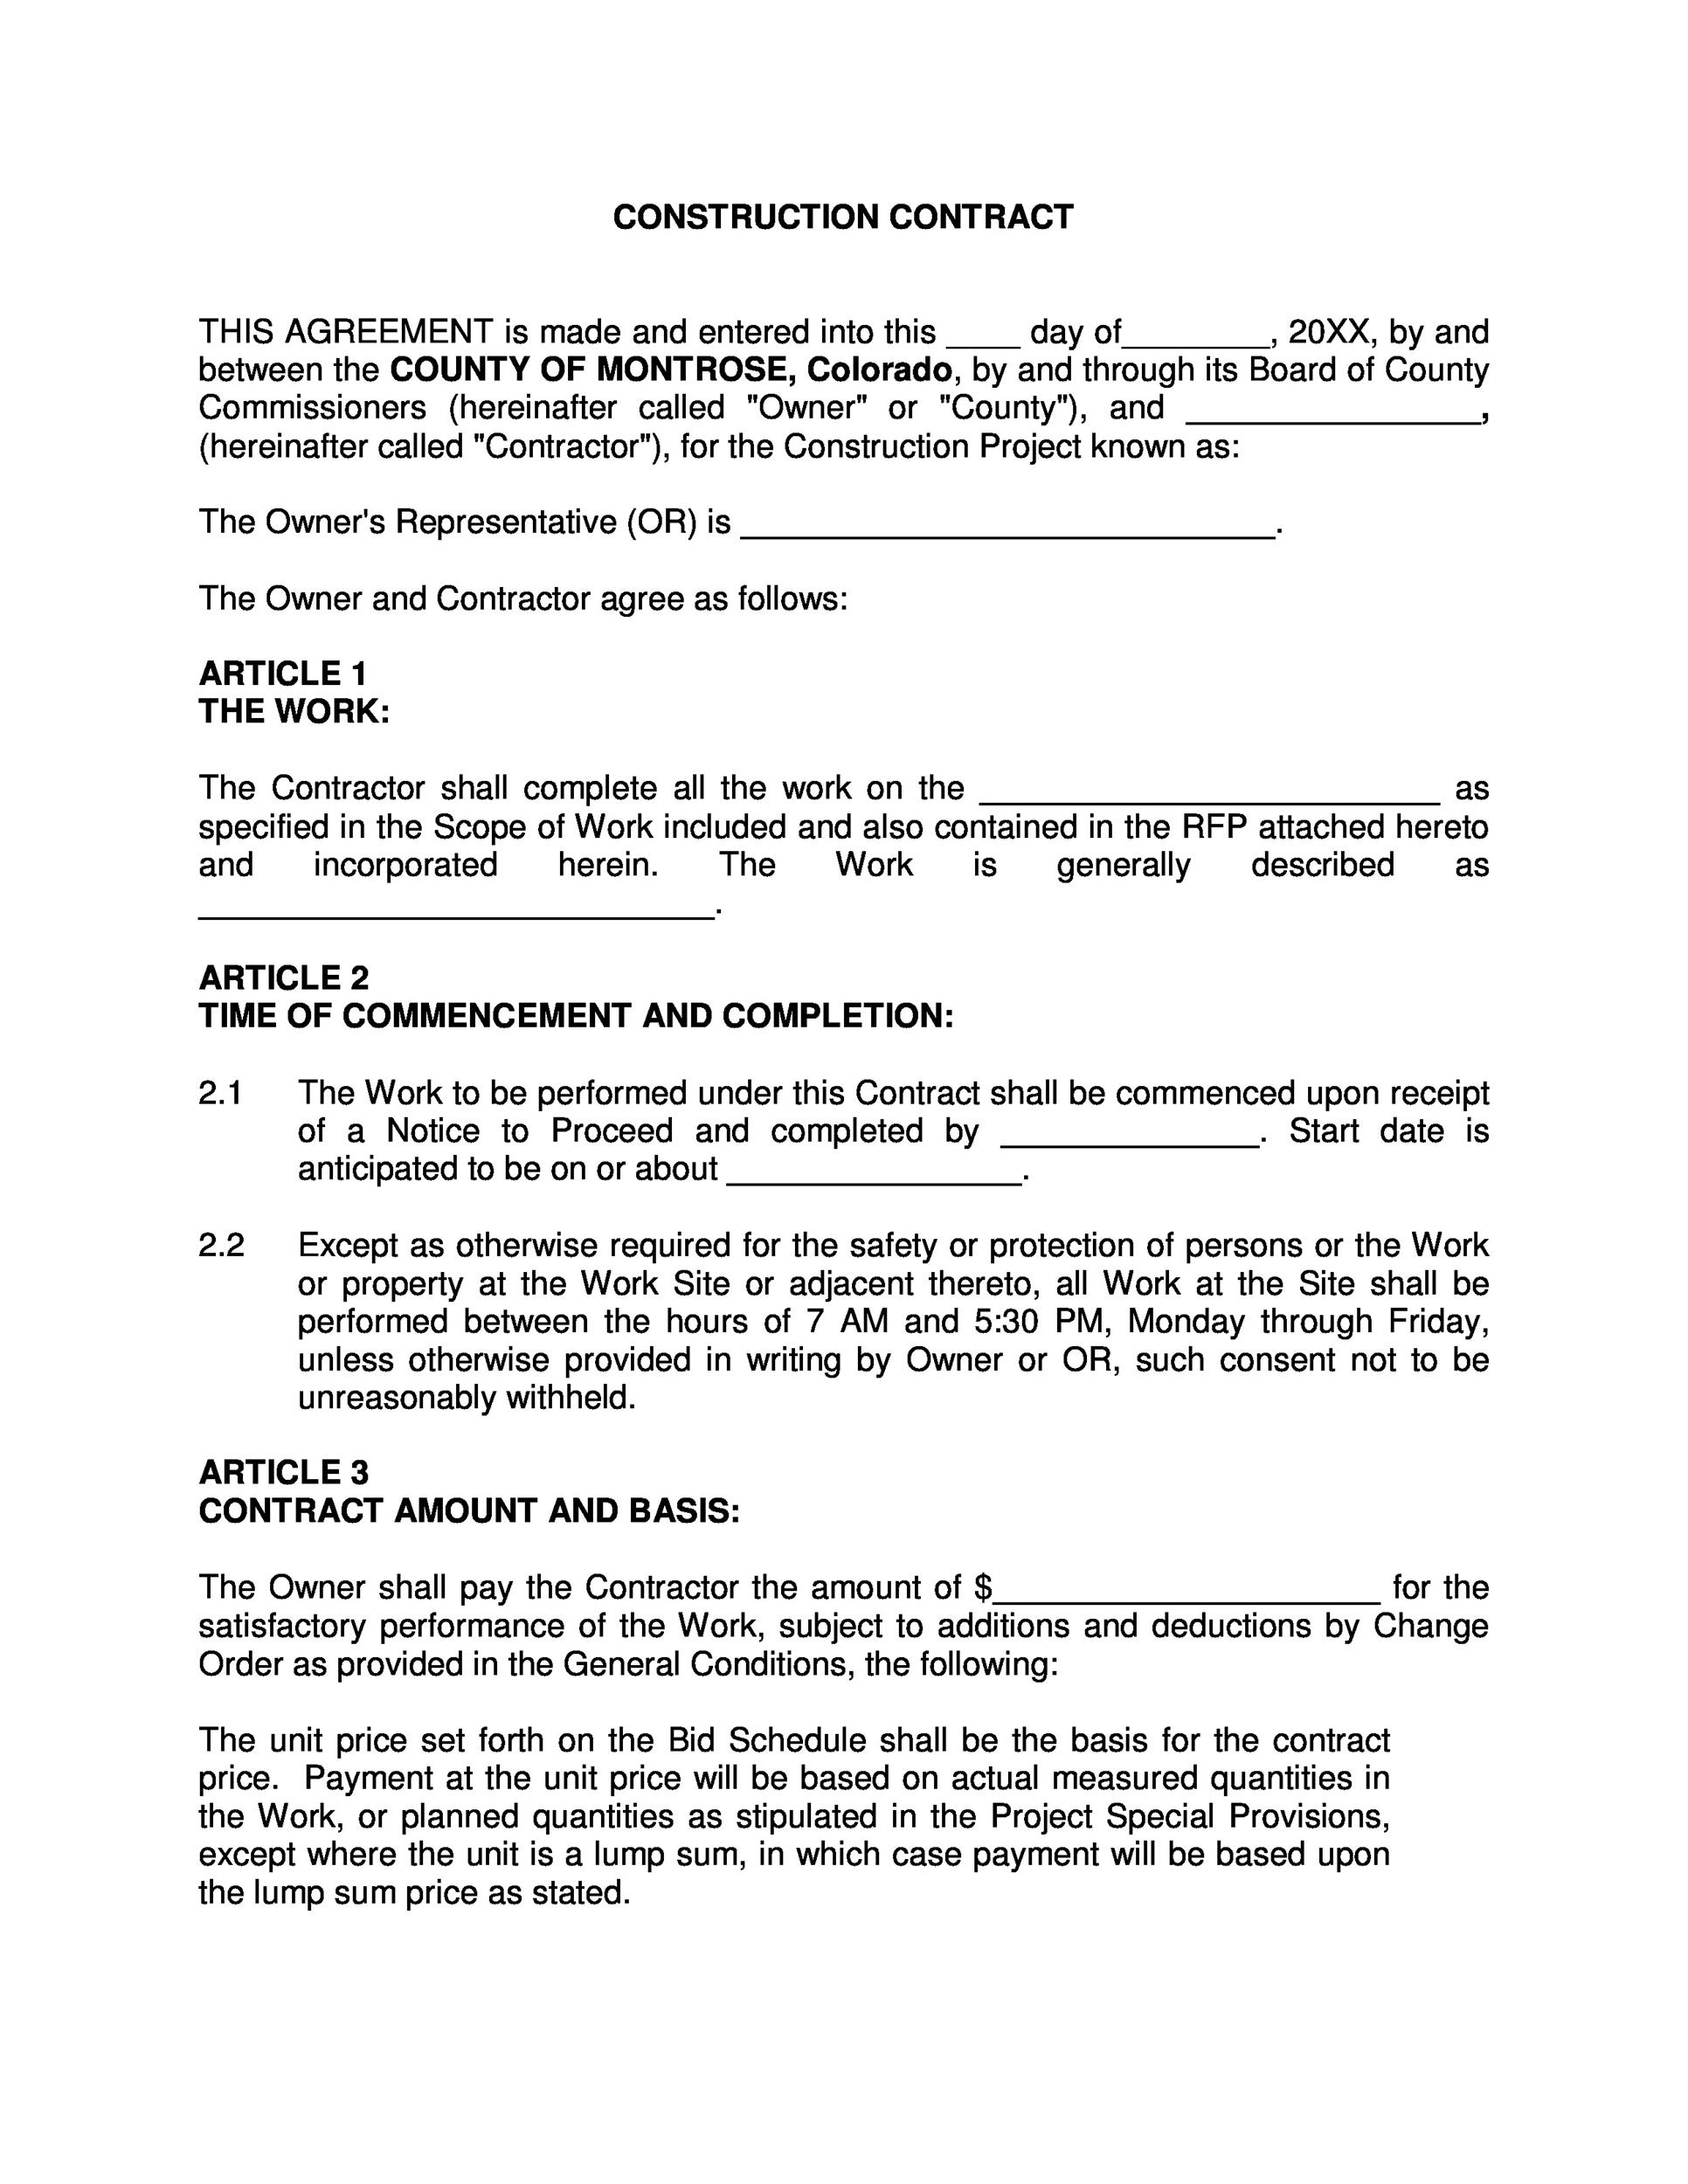 Legal Agreement Contract Contract Agreement Employment Contract